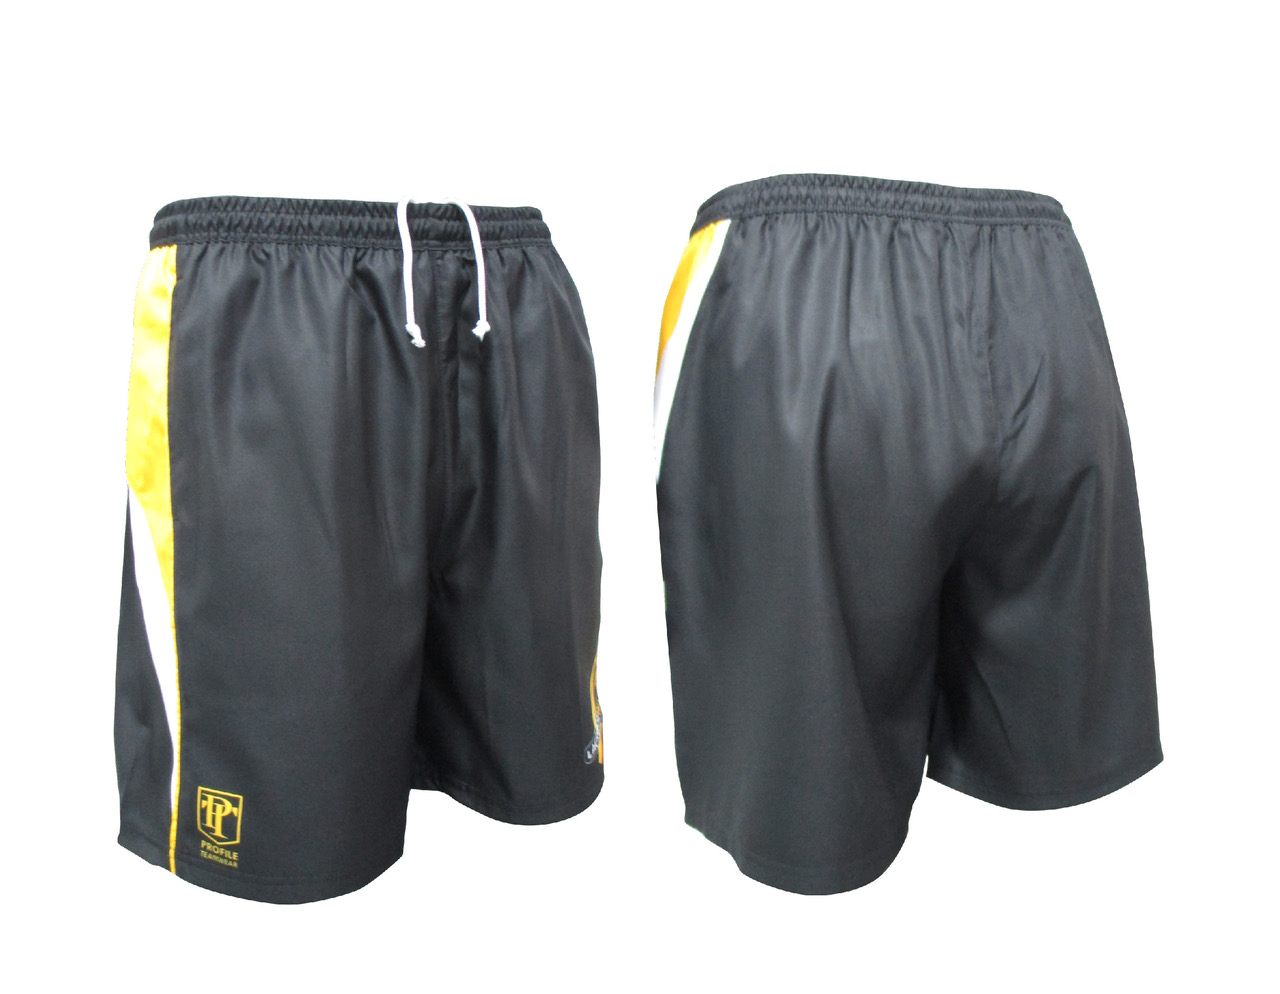 PT - Platinum Shorts